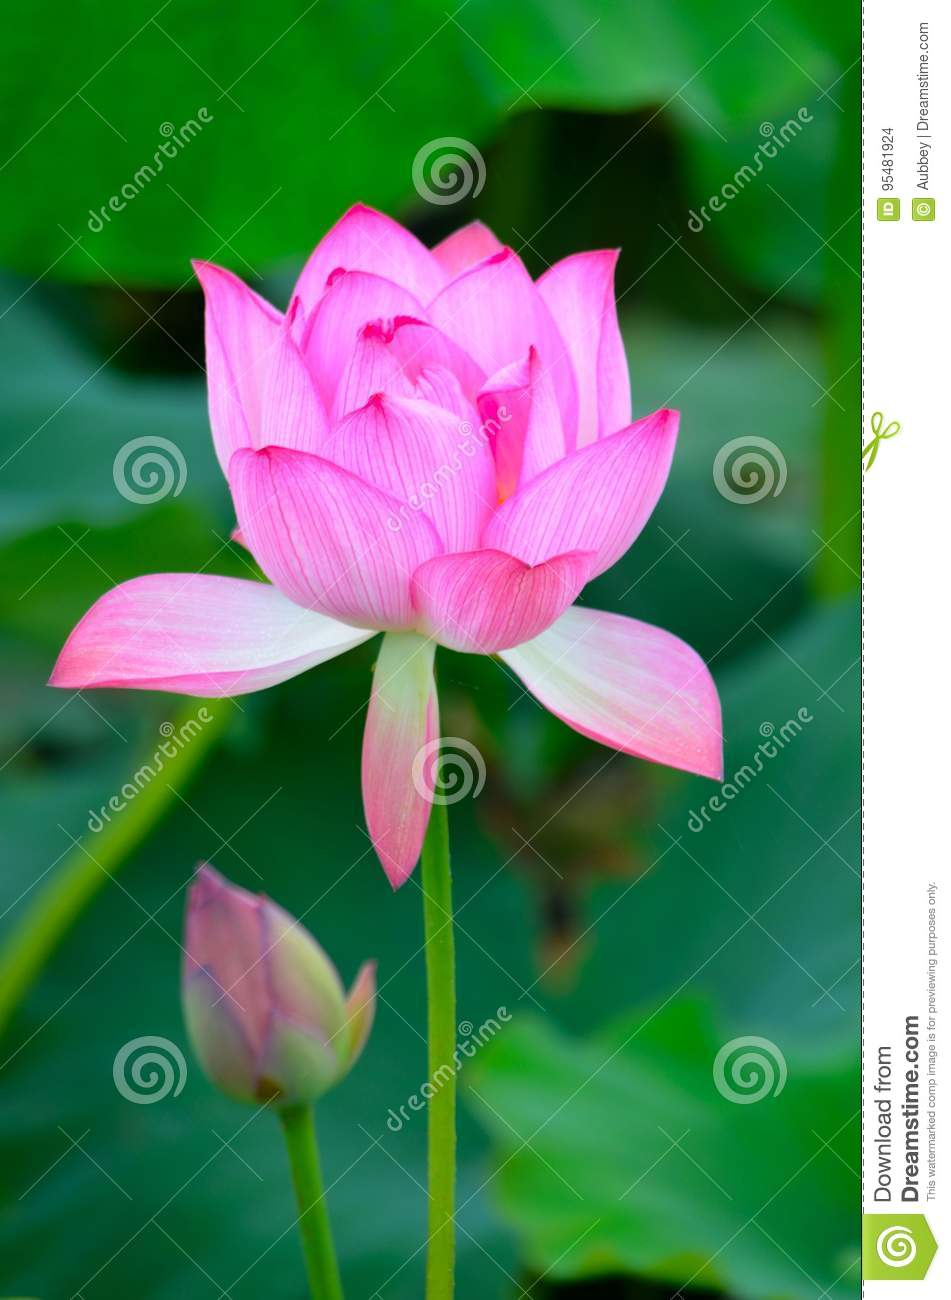 A lotus in full bloom stock photo image of asia companionship a lotus in full bloom izmirmasajfo